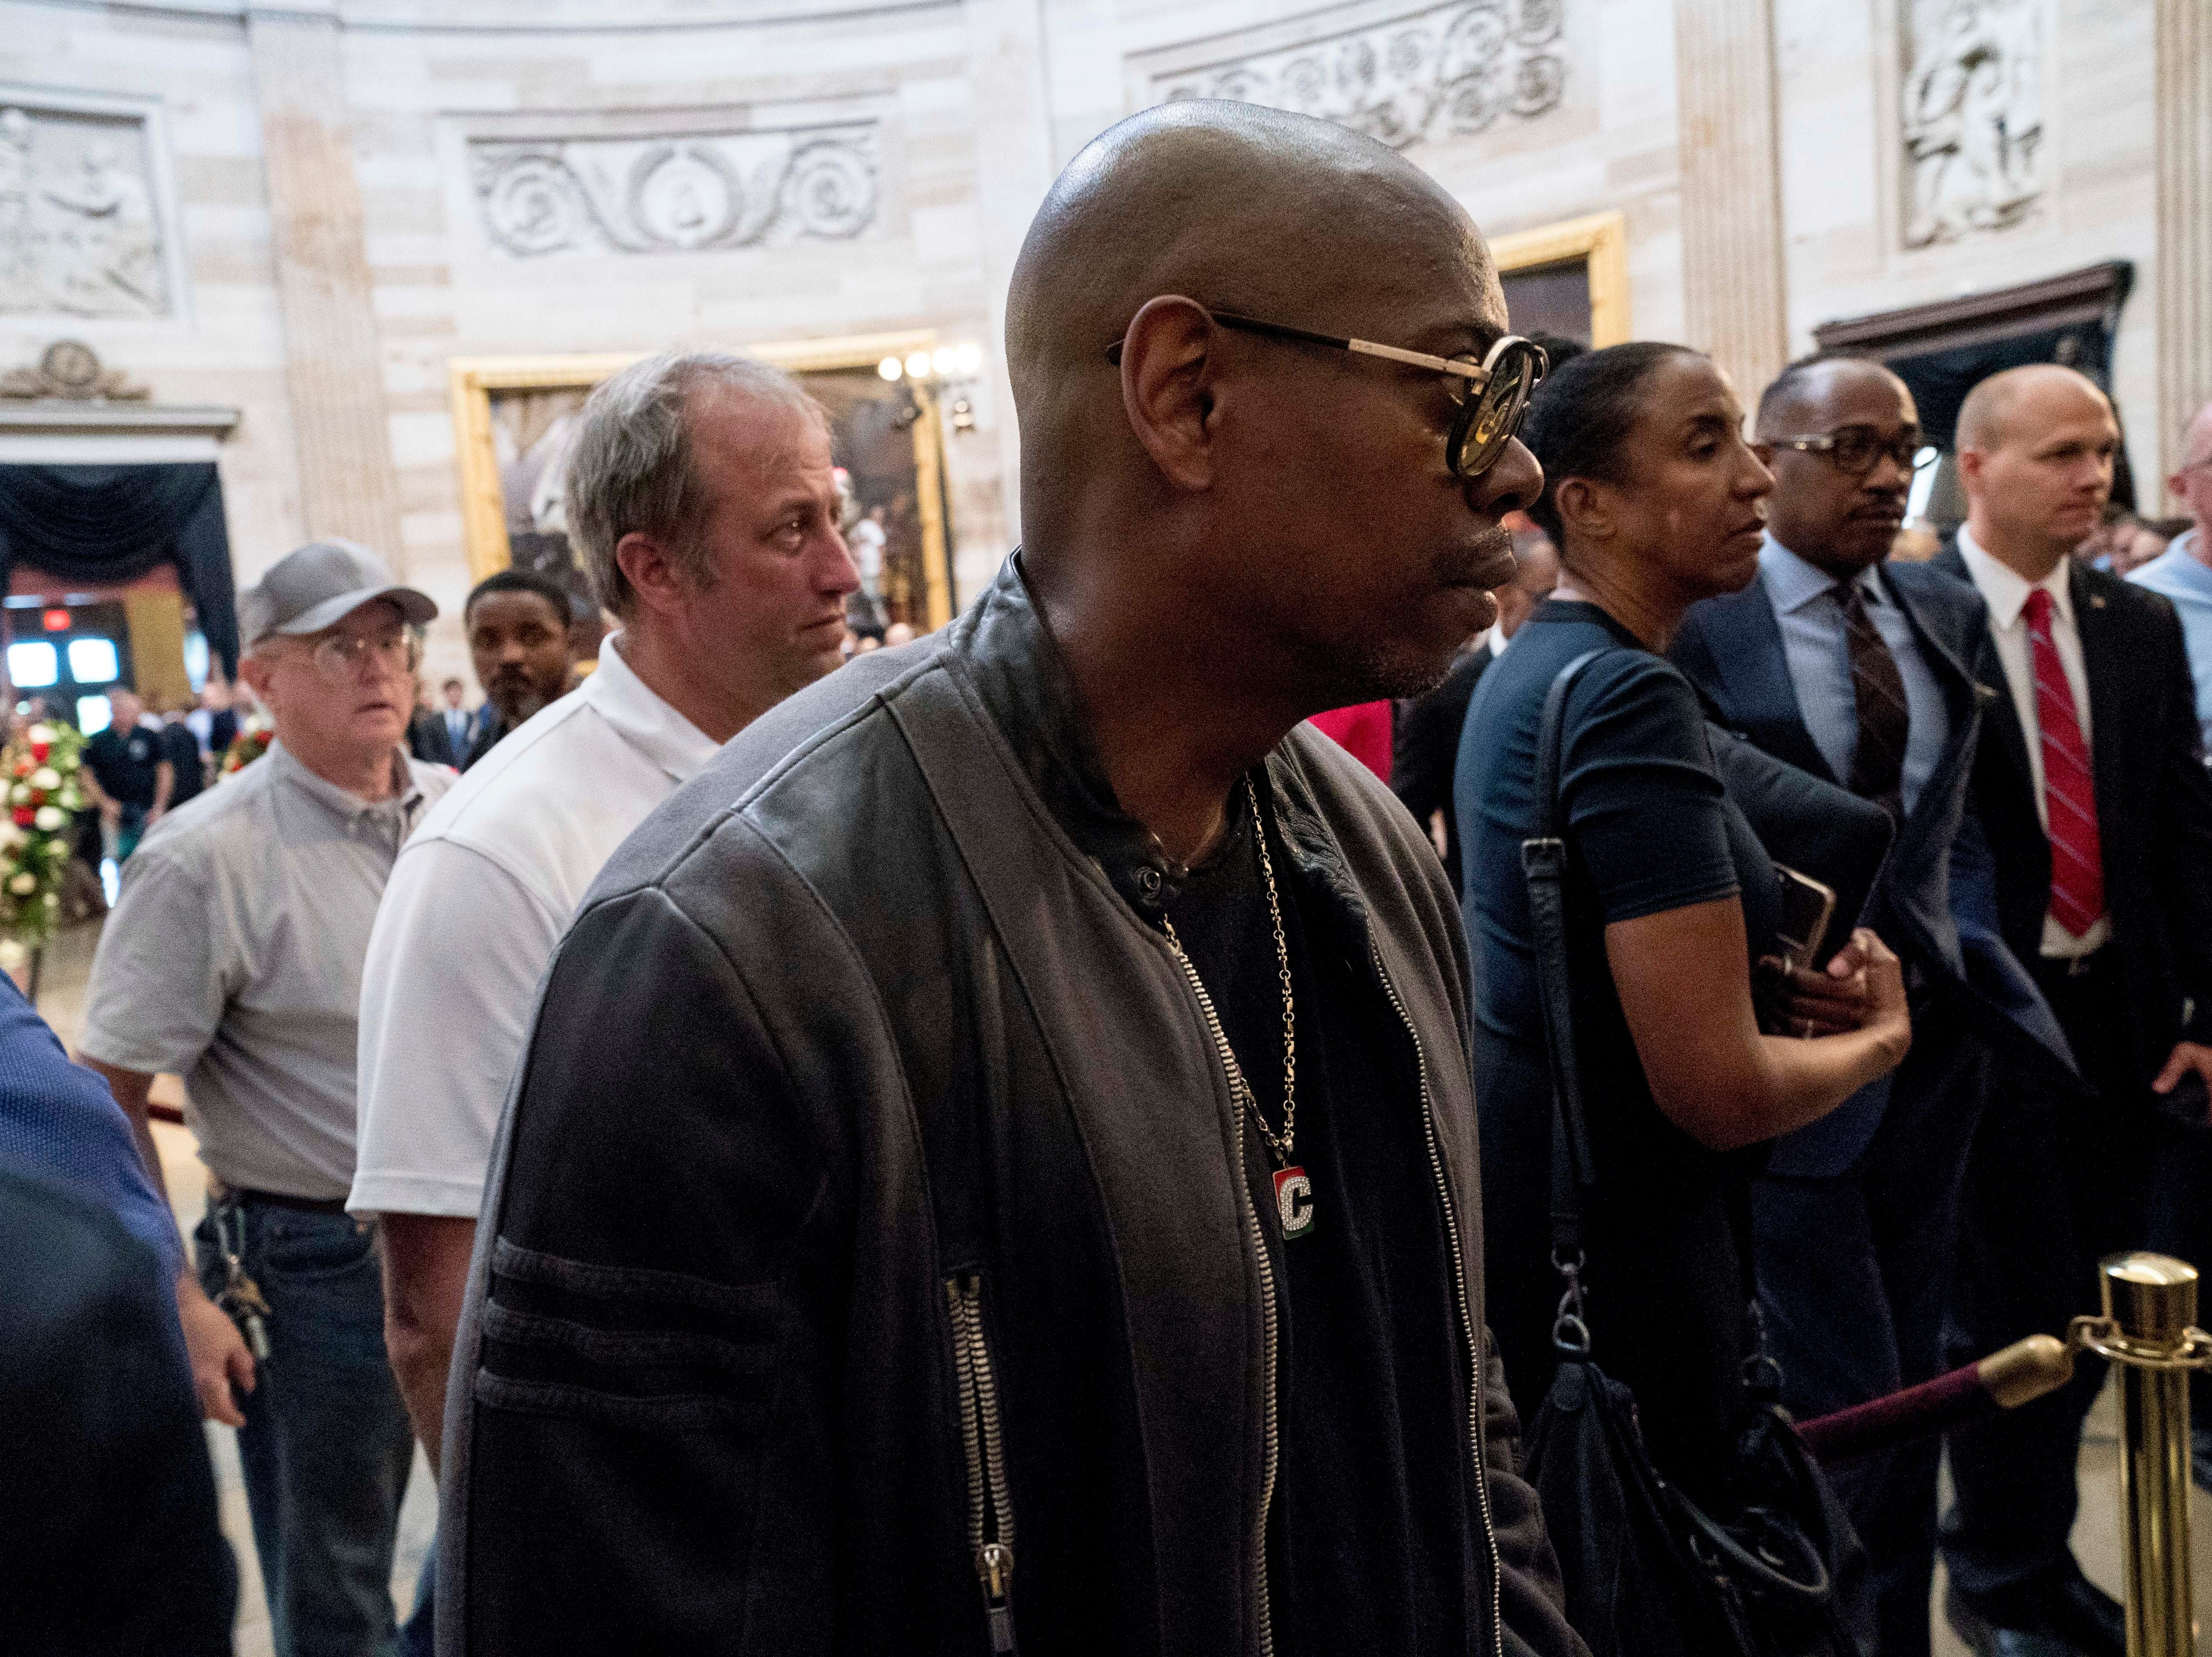 Comedian Dave Chappelle walks through the rotunda as Sen. John McCain, R-Ariz., lies in state at the U.S. Capitol Aug. 31, 2018, in Washington.